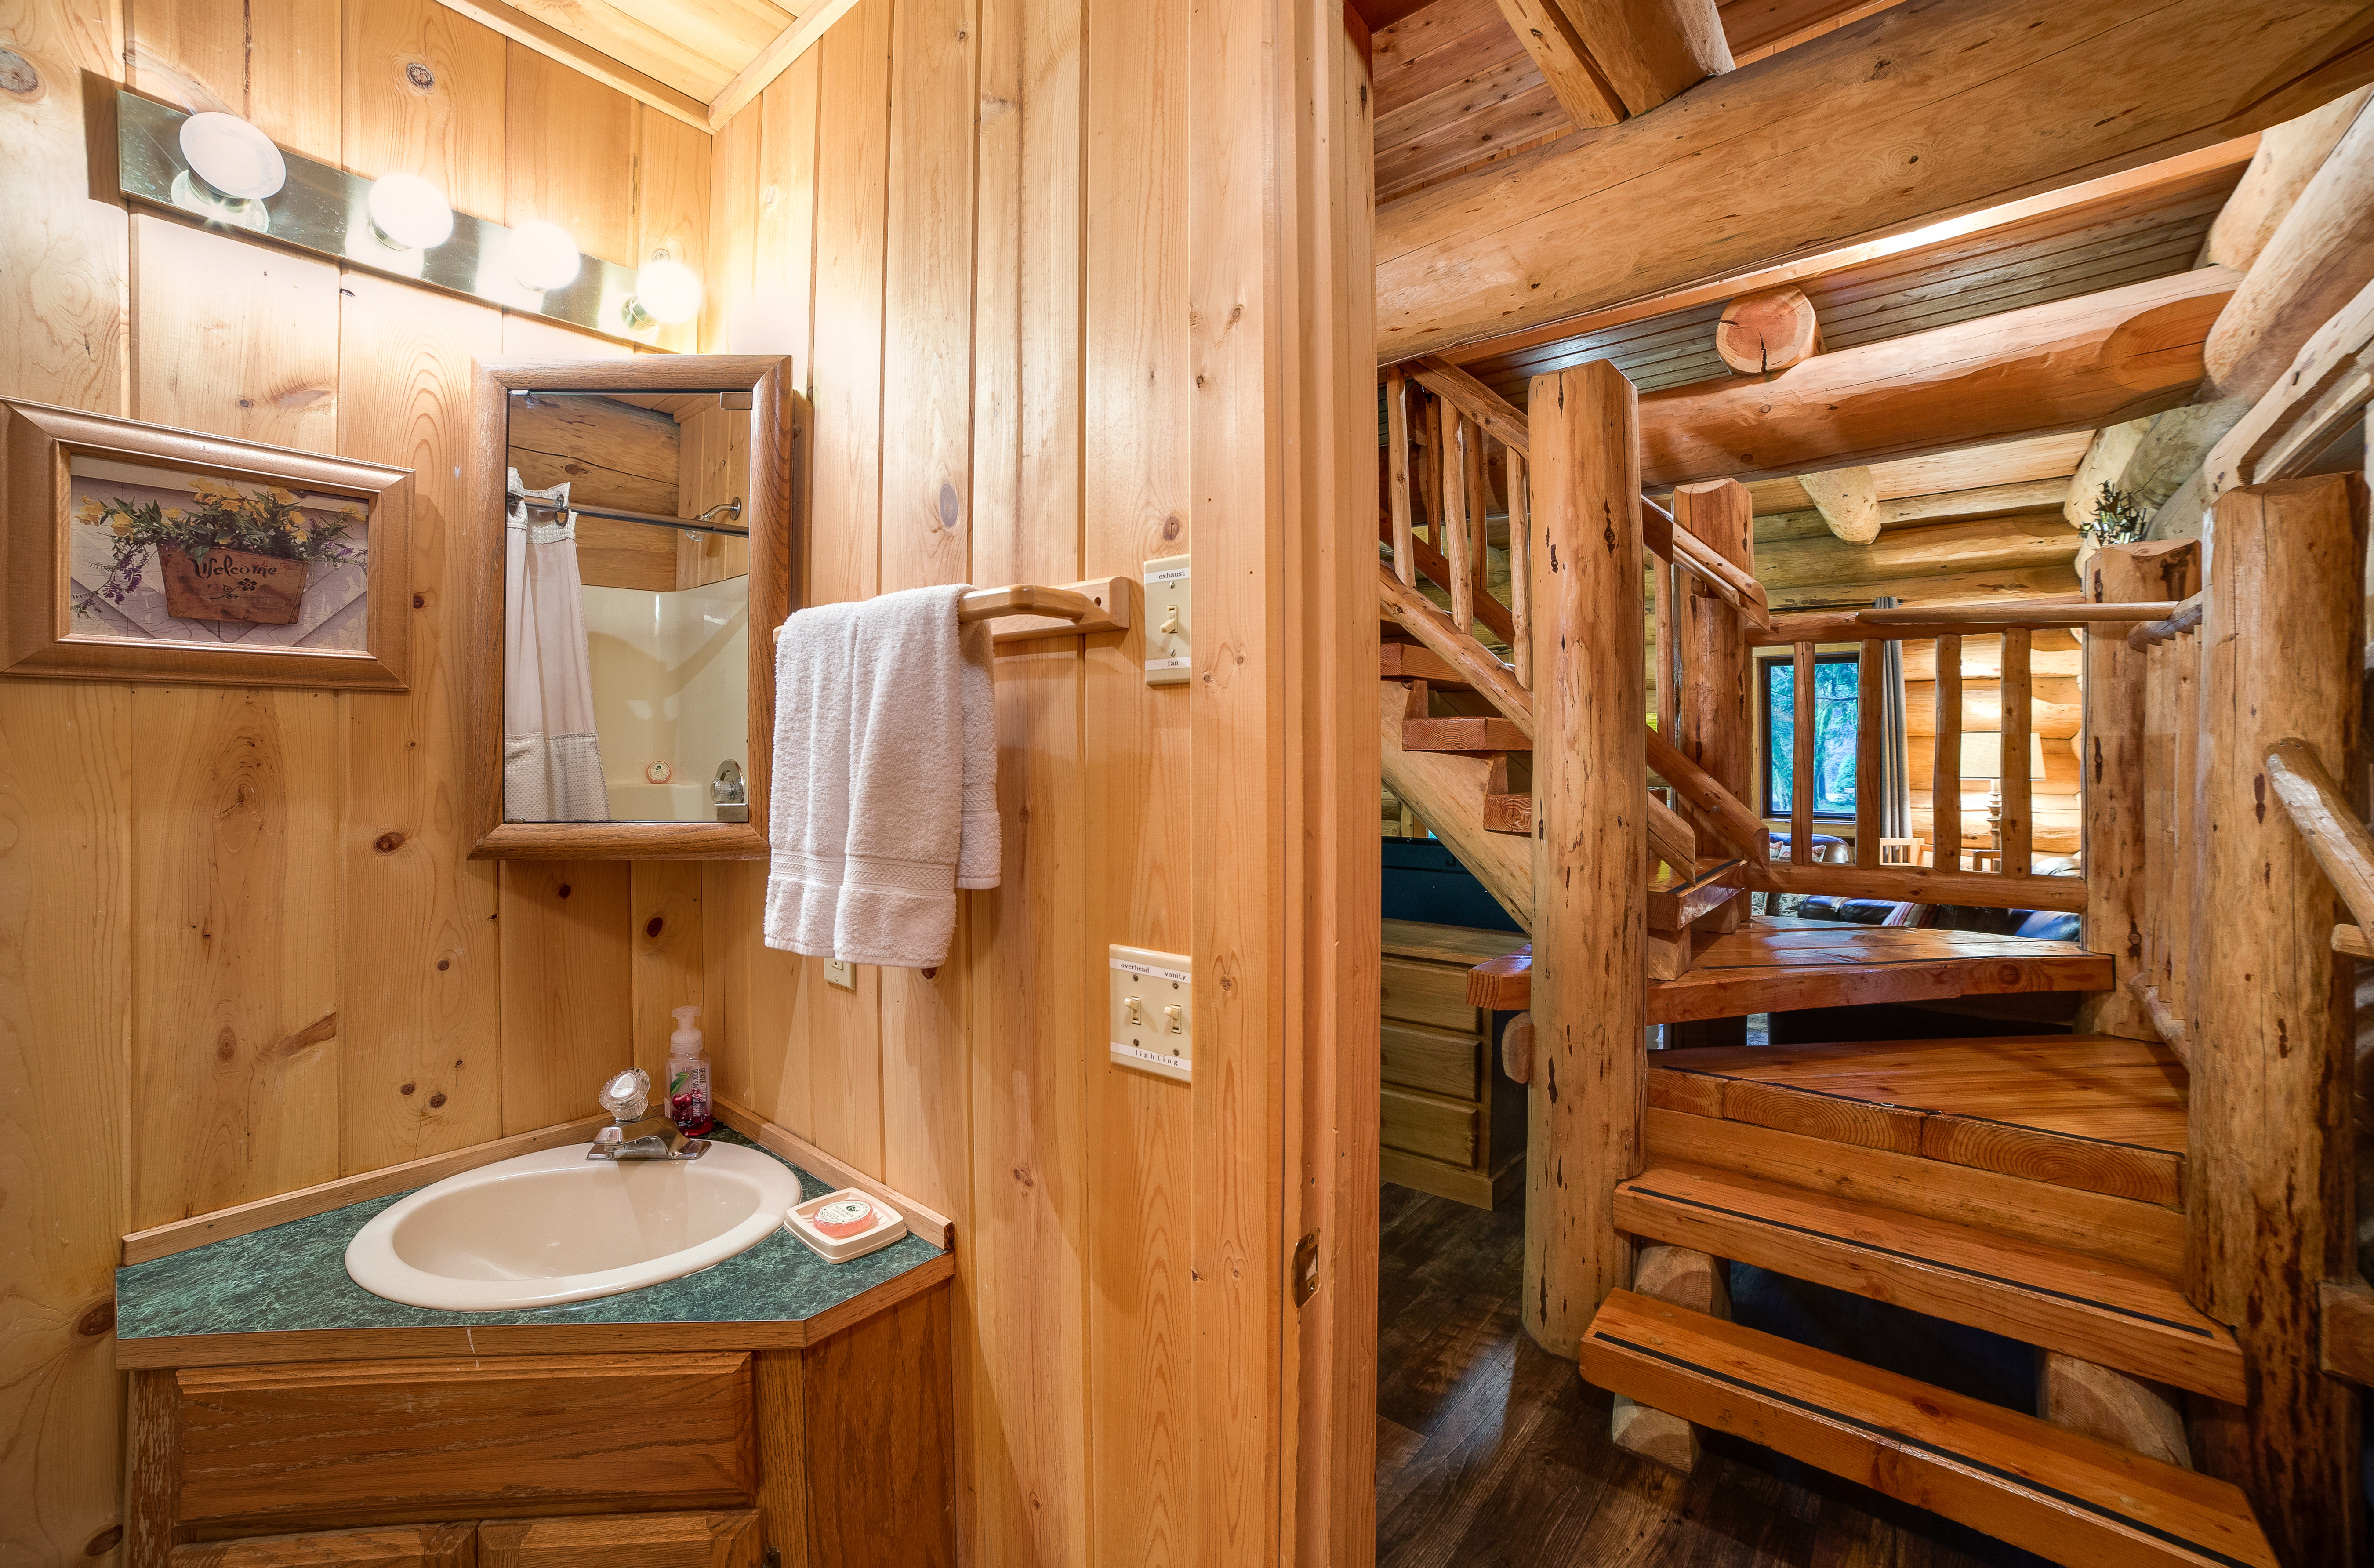 Bathroom and upstairs stairwell